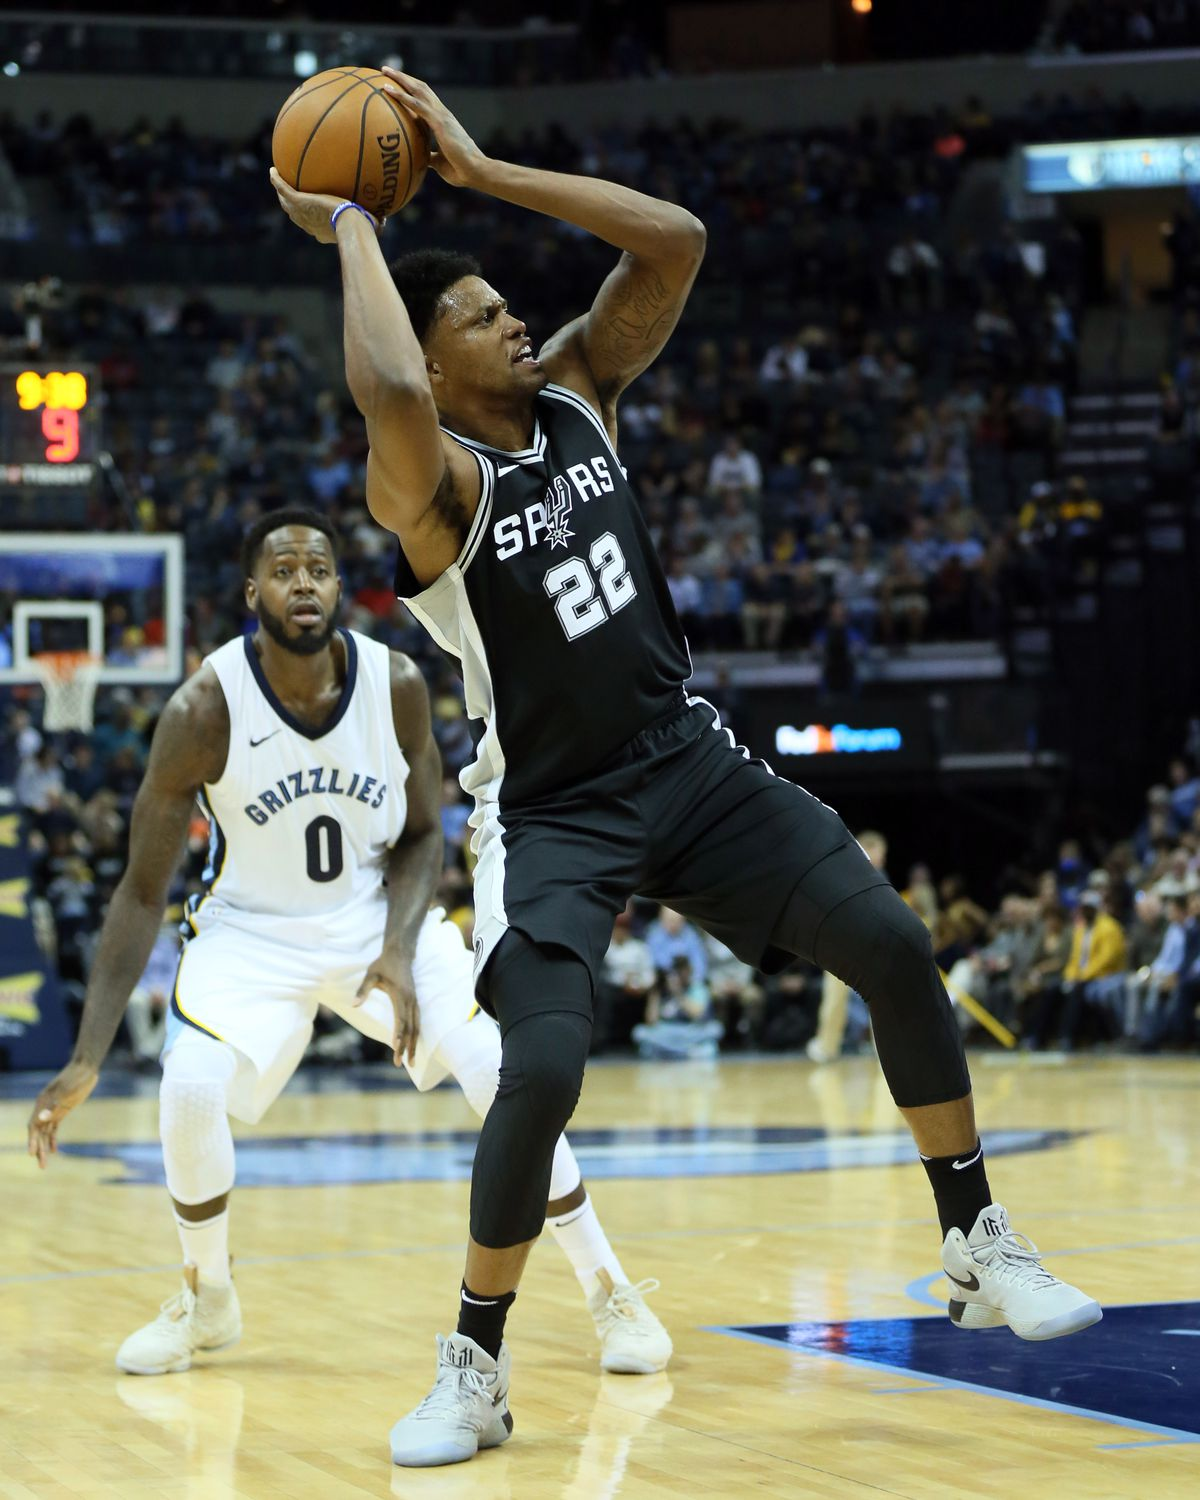 NBA San Antonio Spurs at Memphis Grizzlies